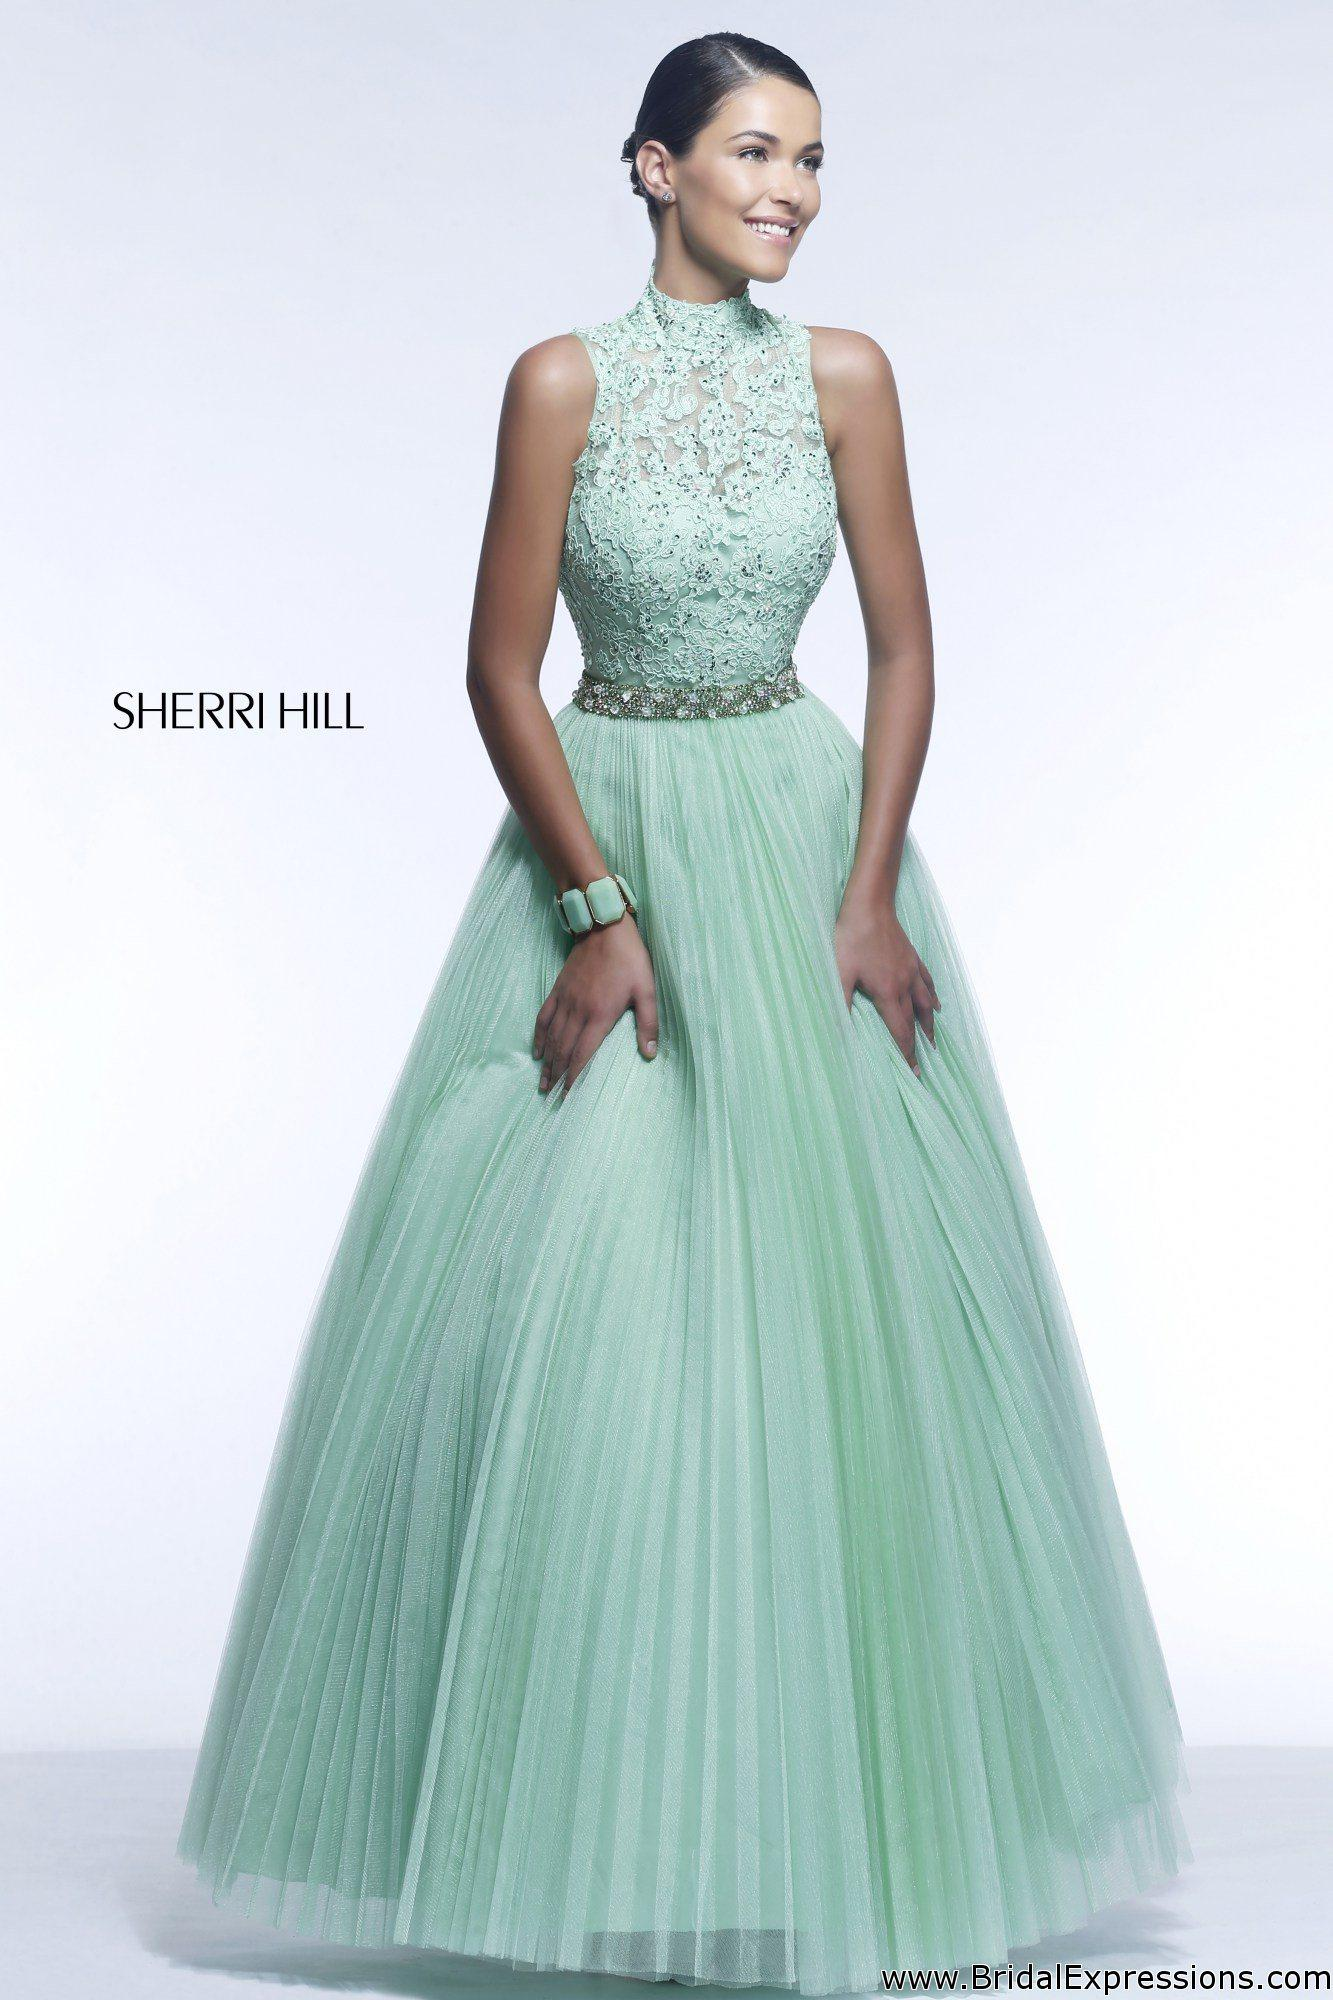 High-neck dresses popular for prom – The Seraphim